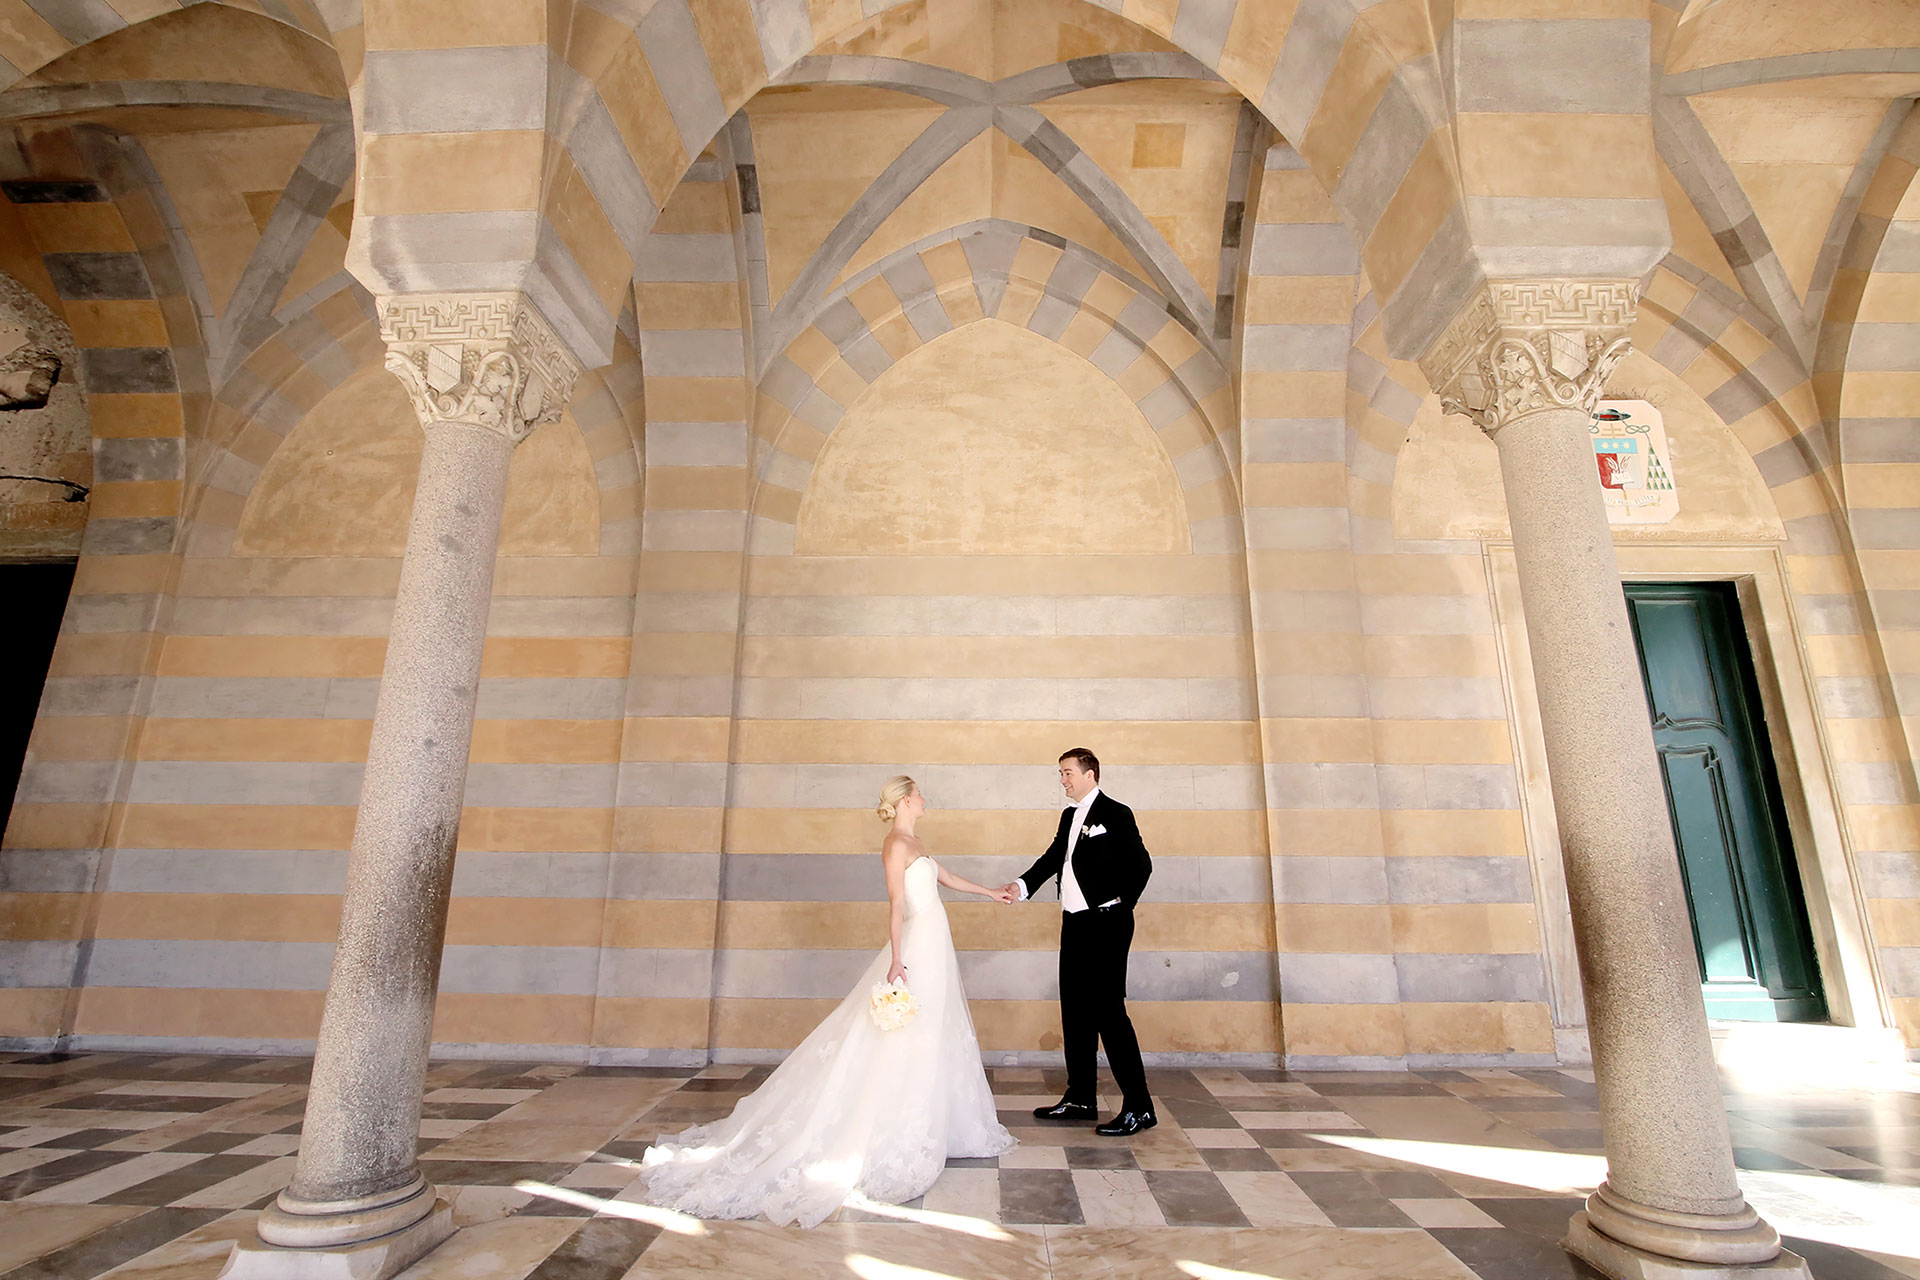 Luxury Destination Symbolic Protestant Vows Jewish Wedding Villa Amalfi Private Coast Reception Venues Italy Claudia Francese Photography Sisters Planner Photographer